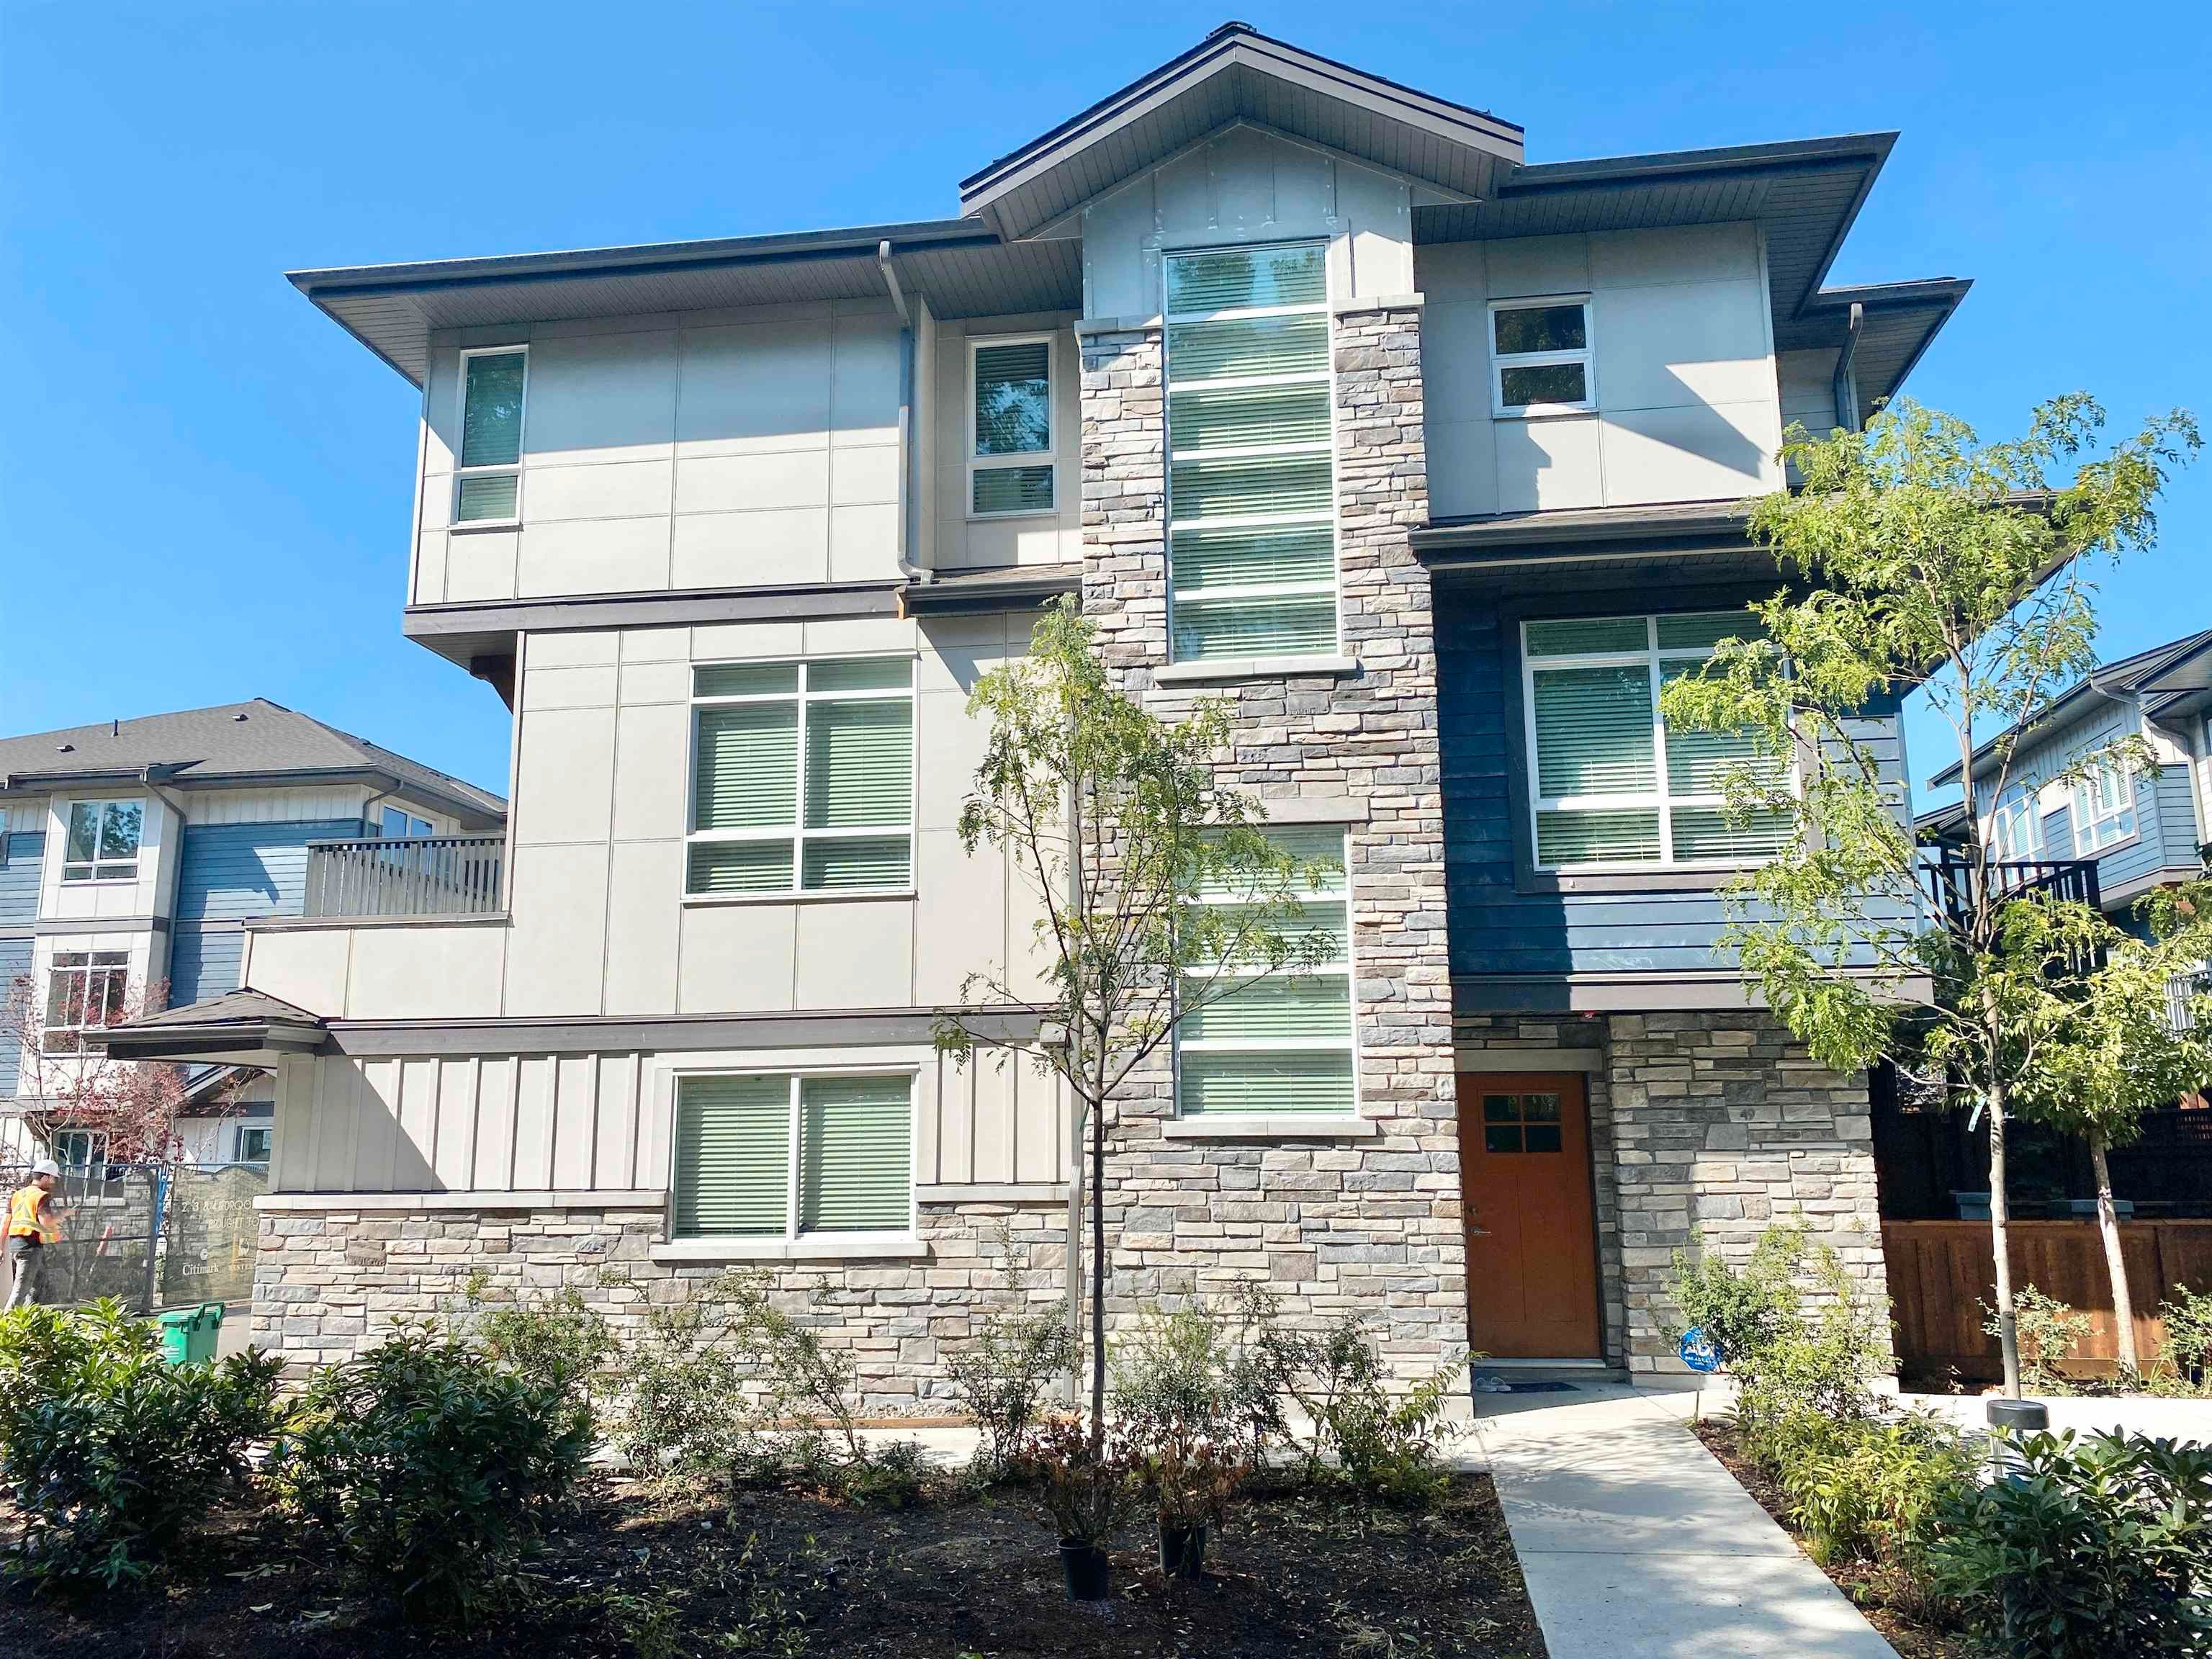 """Main Photo: 49 4991 NO. 5 Road in Richmond: East Cambie Townhouse for sale in """"WEMBLEY"""" : MLS®# R2617047"""